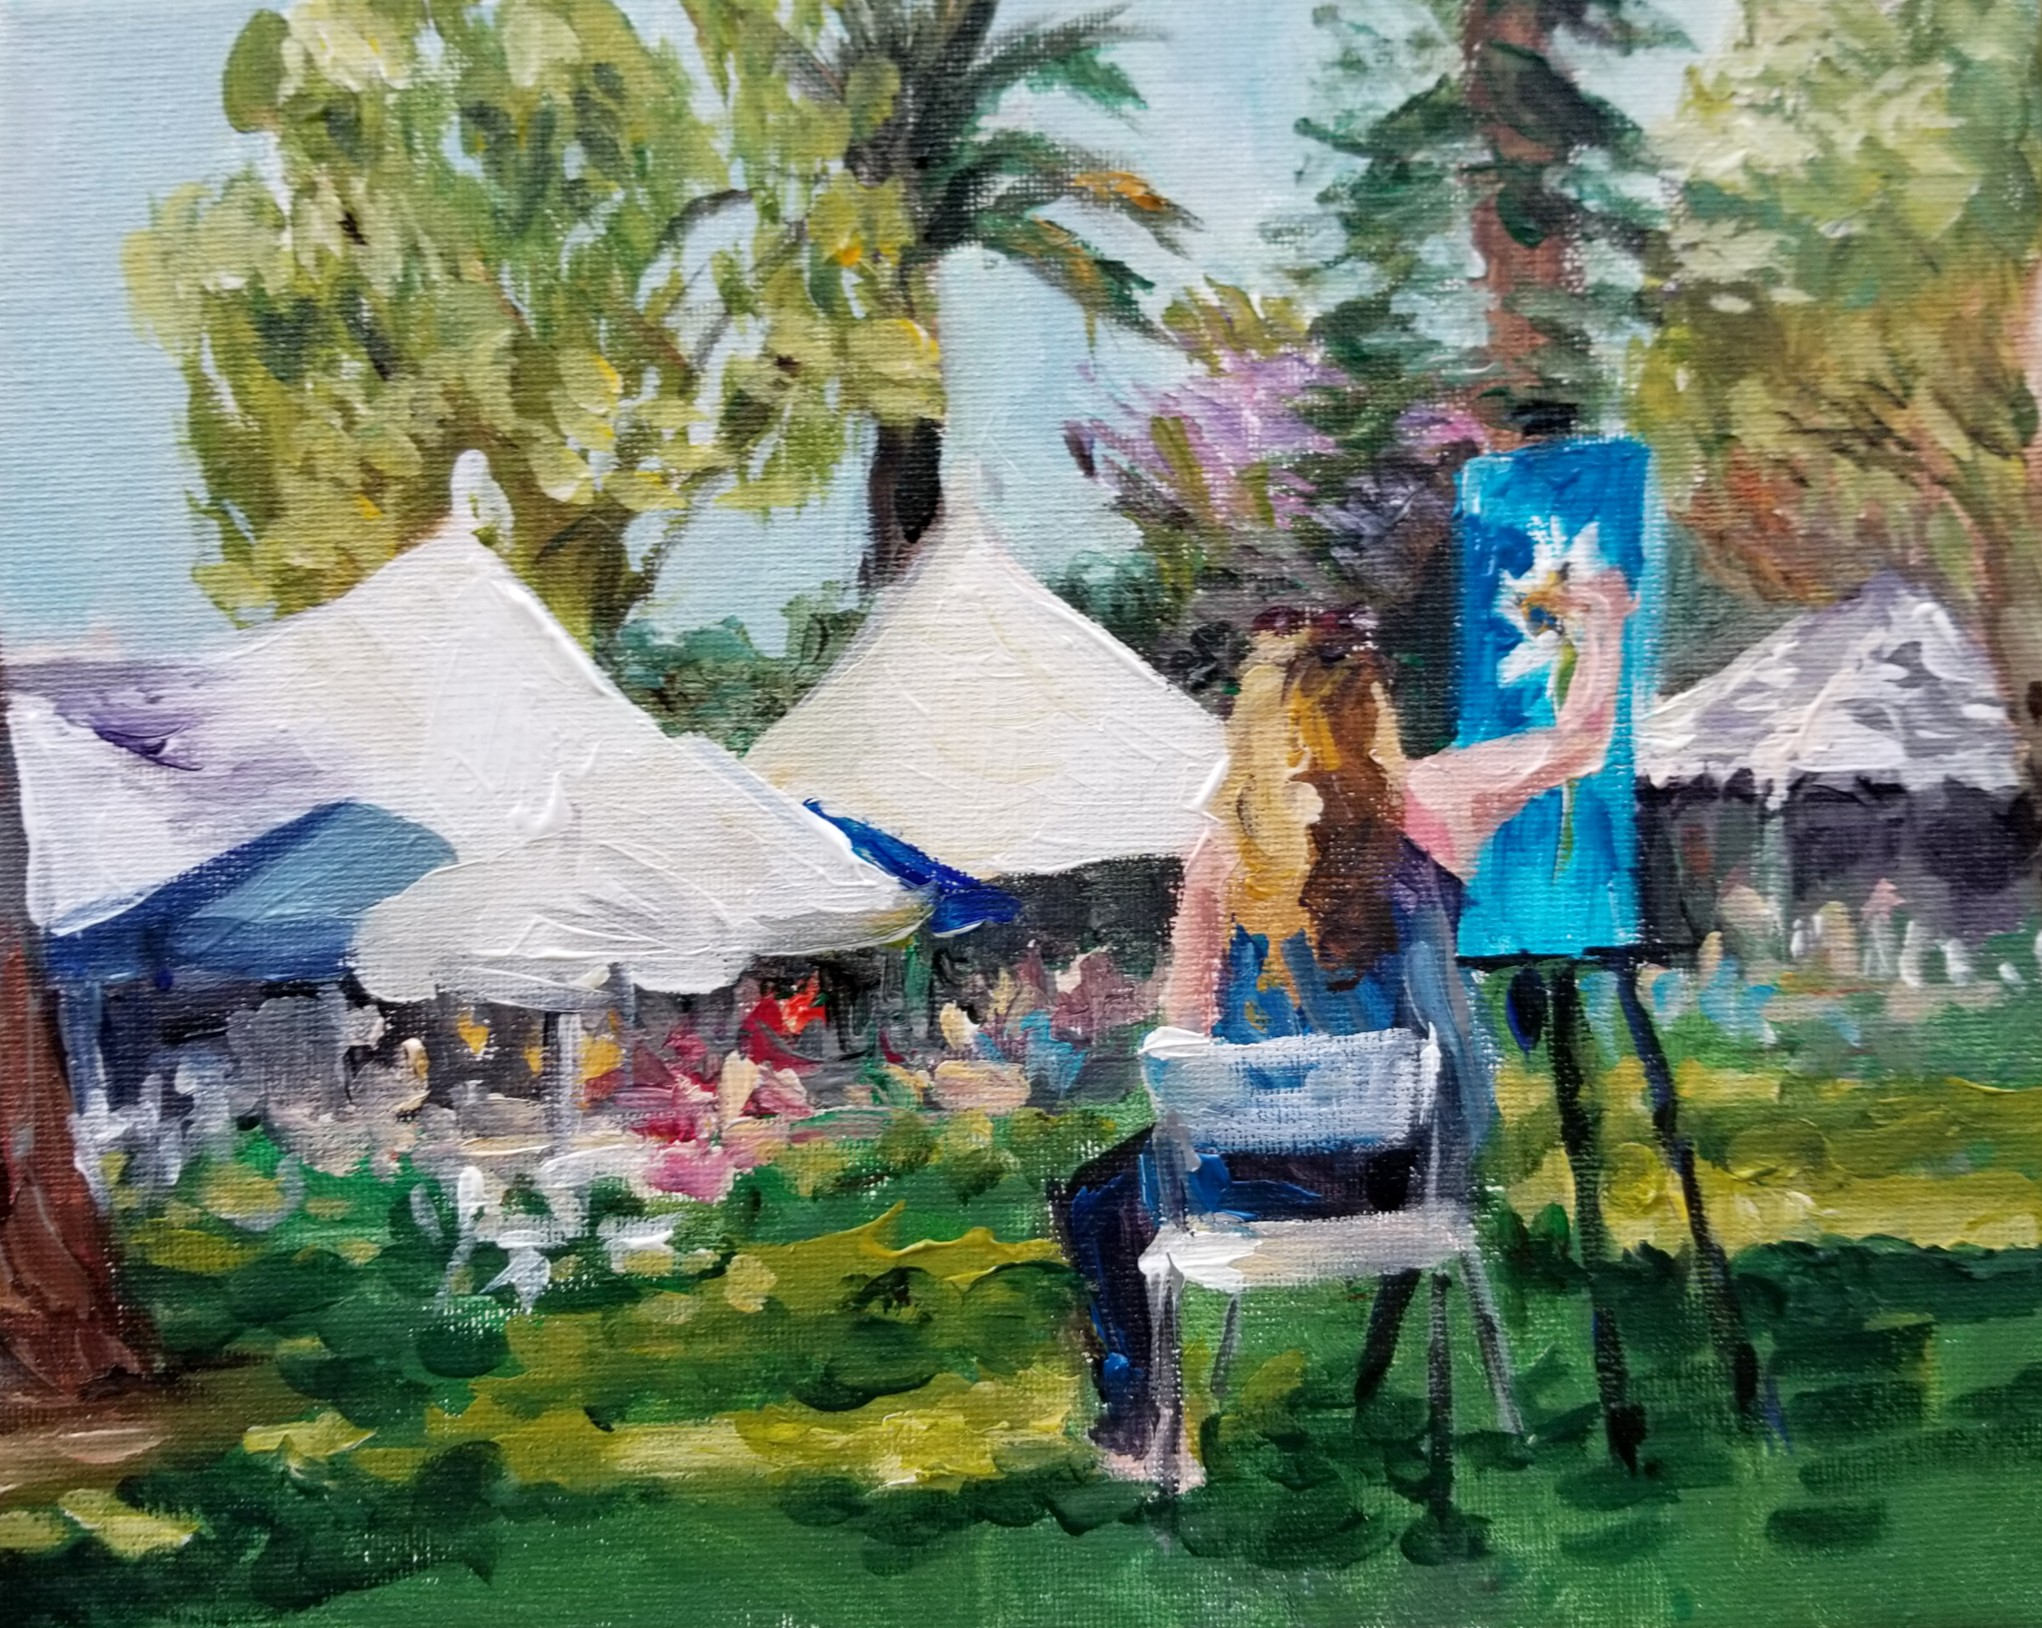 Painting Florals in the Park